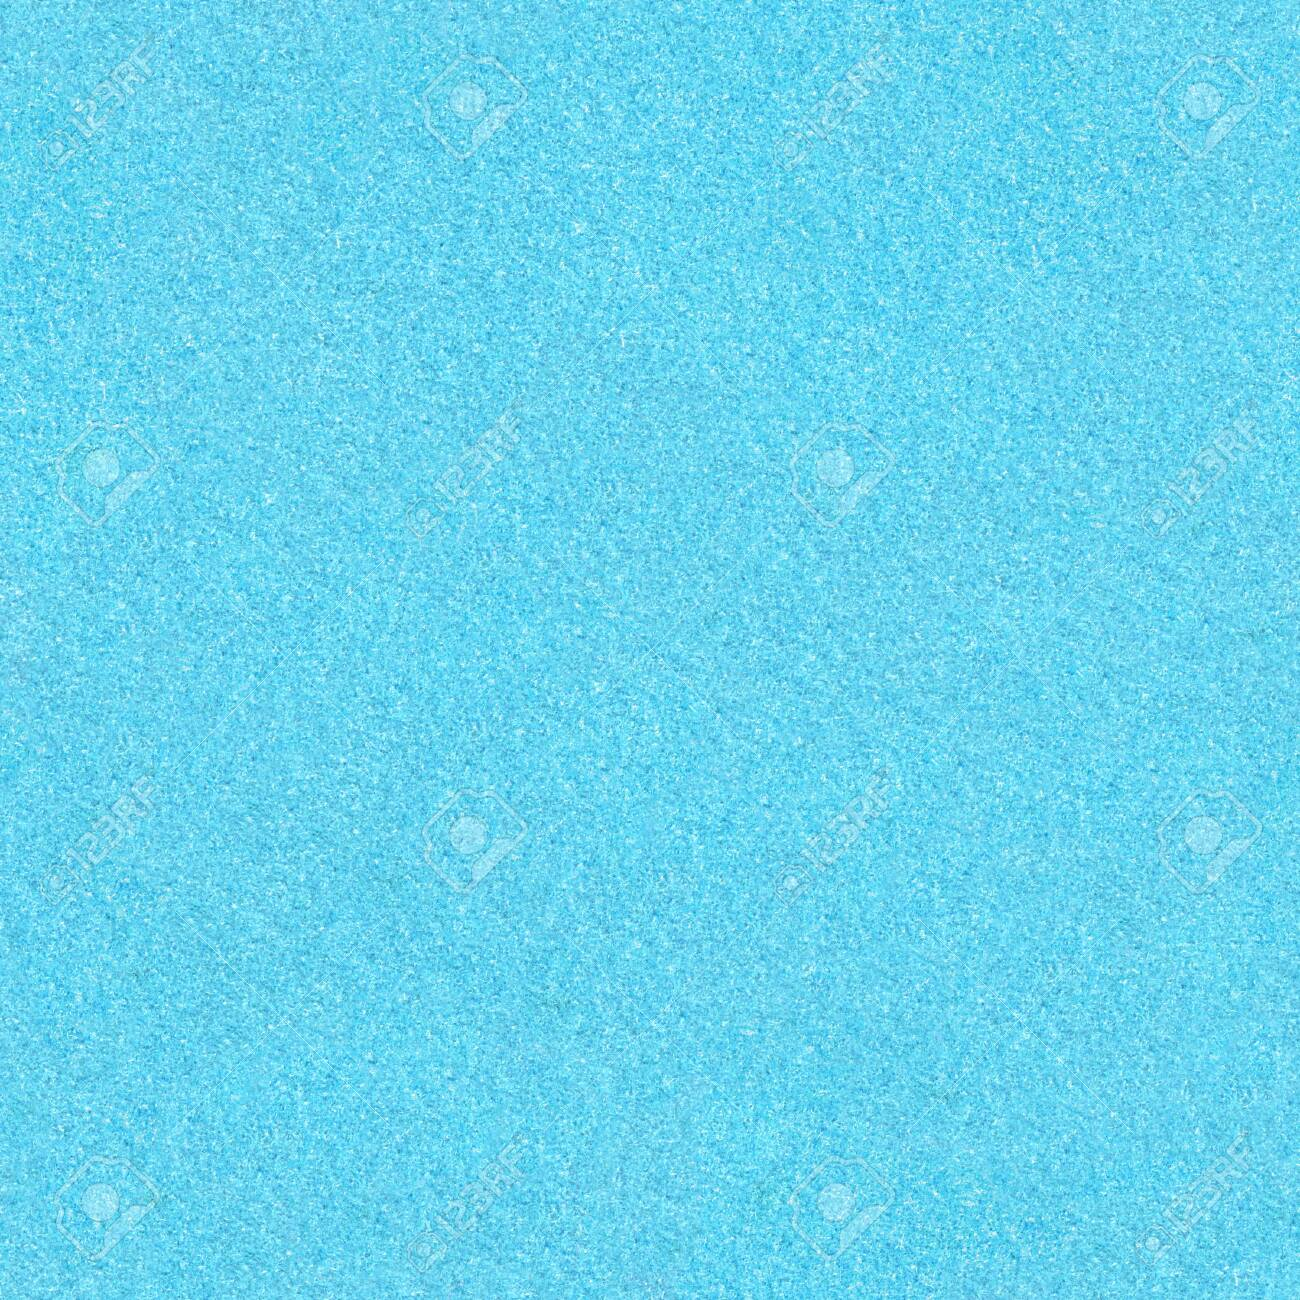 The Texture Of Light Blue Velvet Paper Bright Seamless Background Stock Photo Picture And Royalty Free Image Image 141762568